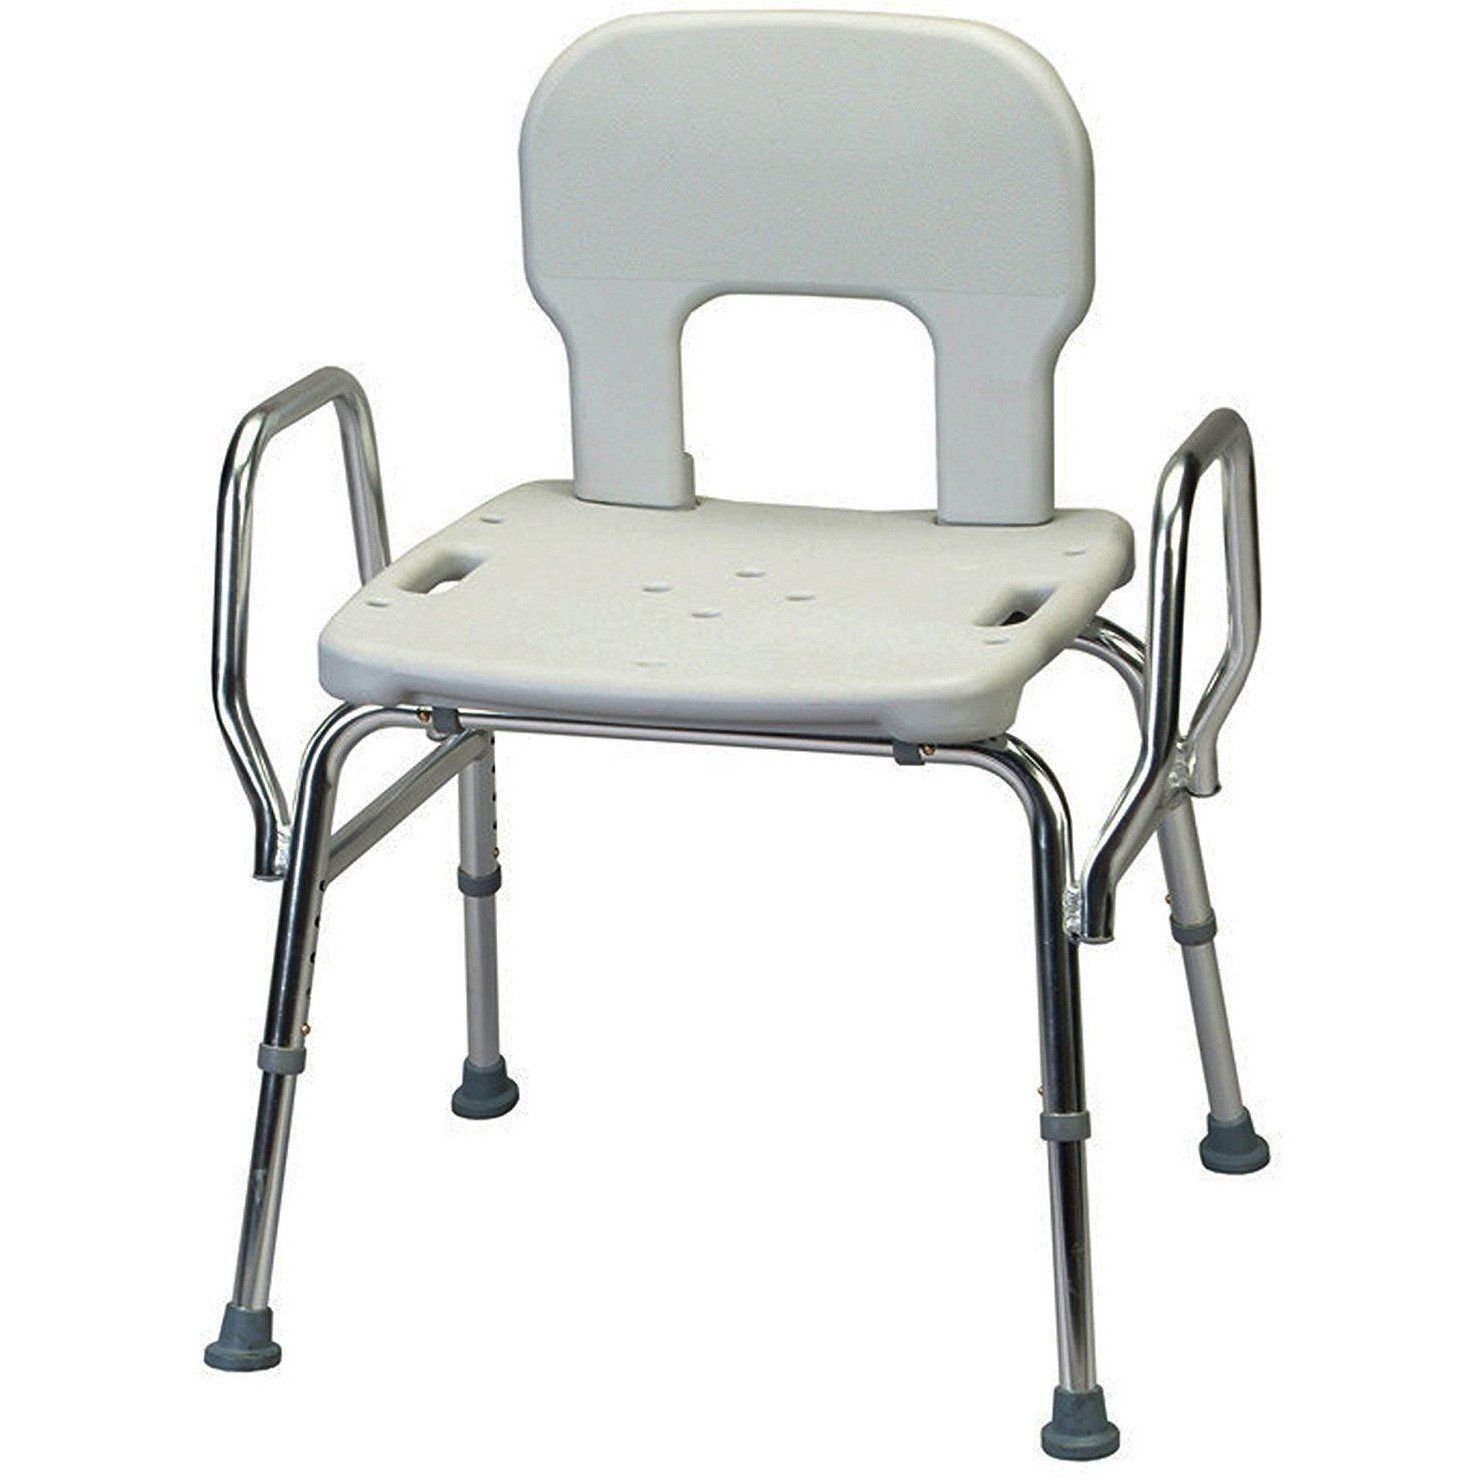 Shower Chair With Back And Armrests Panasonic Massage Repair Eagle Health Bariatric Heavy Duty Bath Arms 500 Lbs